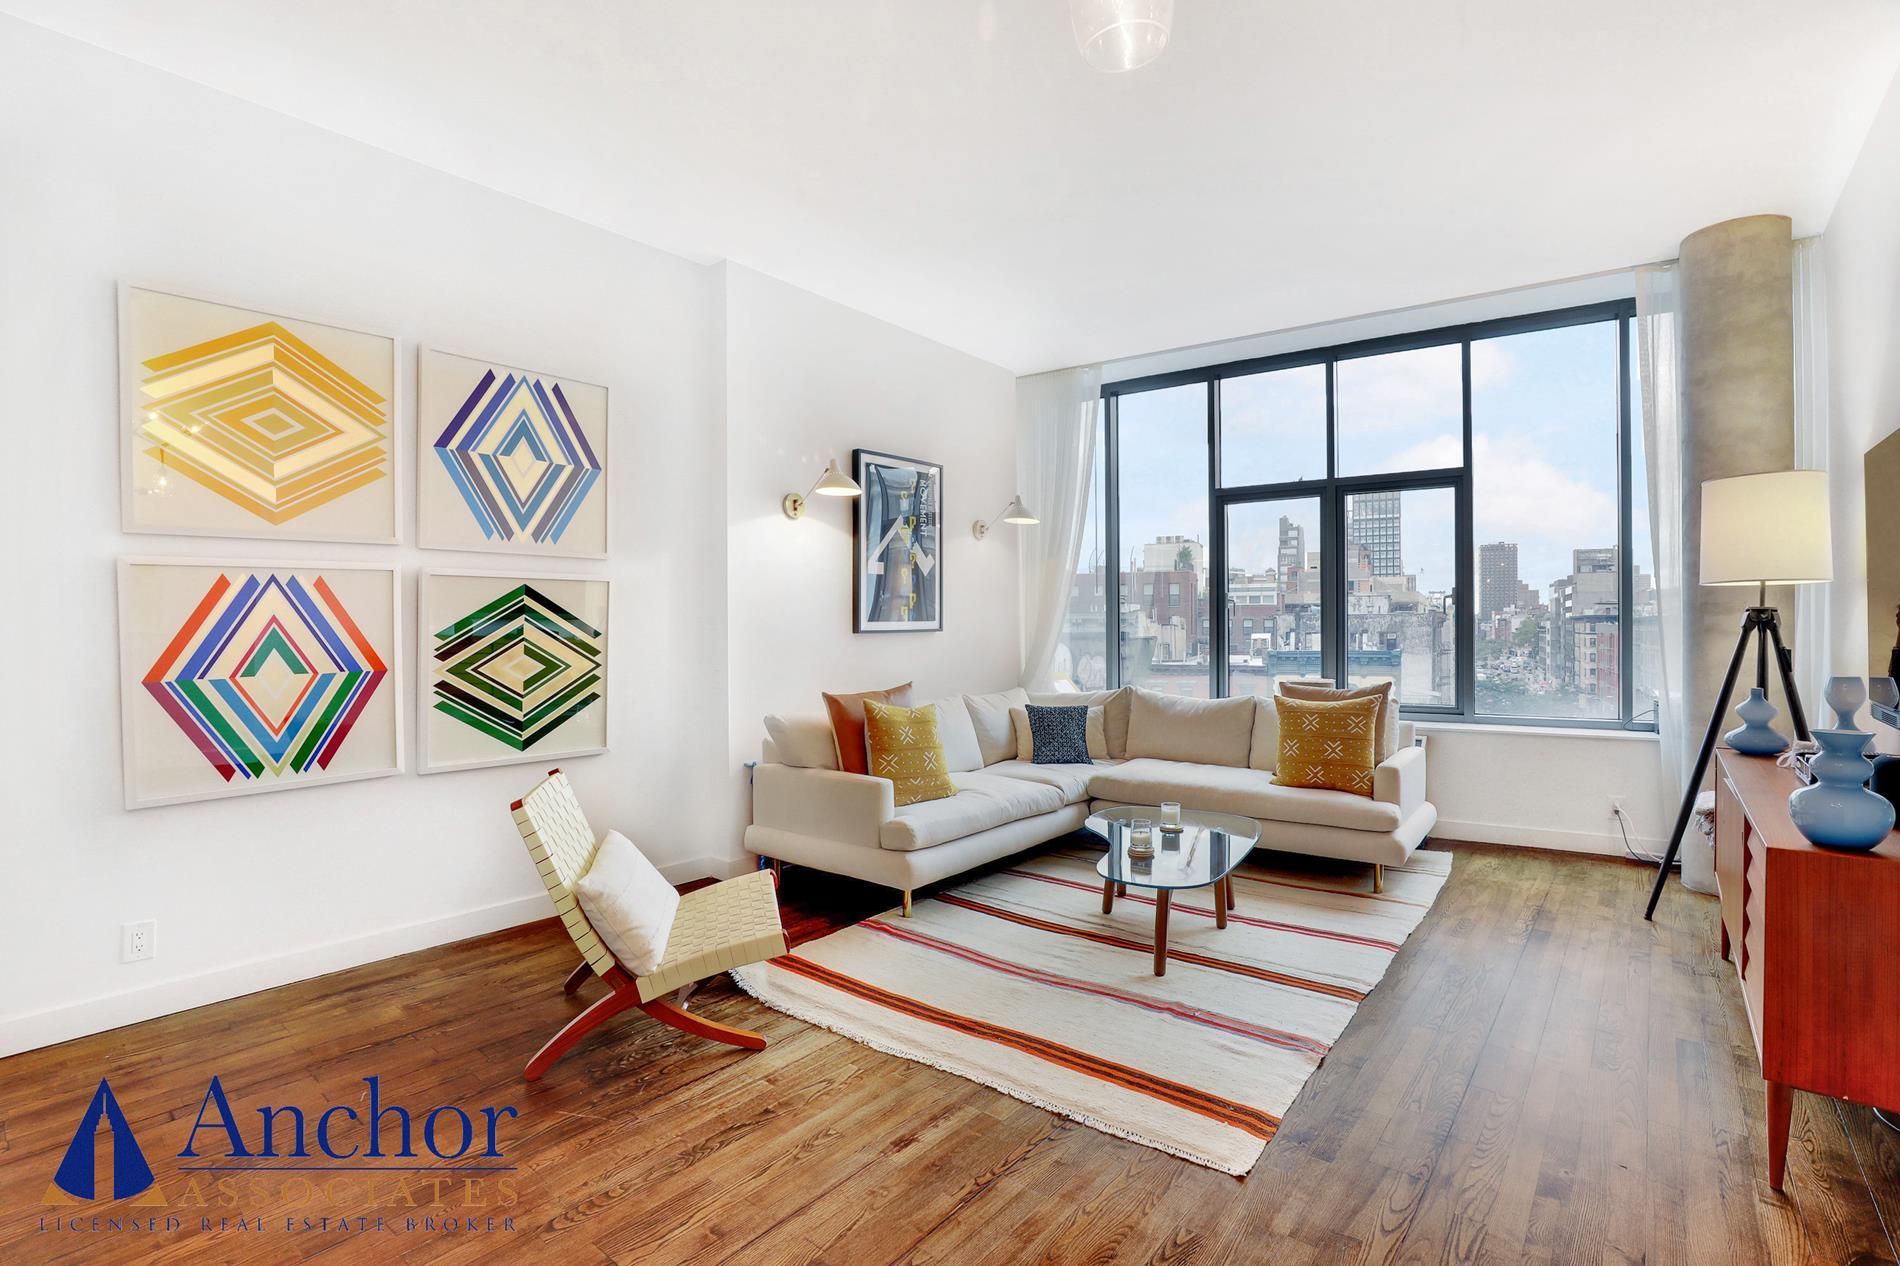 """Open the door to your dream apartment, right in the heart of New York City's most desired neighborhoods... Enter a large, marvelous open space with 10' high ceilings and oversized windows, revealing breathtaking urban views! The living room also features beautiful genuine hardwood floors and incredible living space to relax and entertain. The State-Of-The-Art open kitchen will make your cooking experience super convenient with it's extra large Carrara Marble countertop, top-of-the-line stainless steel appliances, white cabinets with expensive gold handles and a custom door panel ready dishwasher! On the other side of the apartment you will find the incredible master bedroom, featuring great space, wonderful natural light, """"his & hers"""" build-in closets and a stunning En-Suite bathroom with a double vanity, a bathtub+shower and expensive modern fixtures. Right by it you'll find the second bedroom, also featuring a great amount of space, as well as great natural light and a built-in closet. To make your living situation more comfortable, you'll enjoy a guest full bath with modern fixtures and a tub, and an in-unit washer/dryer!This remarkable unit is located on the 6th floor of a luxury doorman building. Enjoy entering a beautiful lobby with a concierge, as well as classy elevators and an on-site health club!**AREA** PRIME SOHO LOCATION! This building puts you right in the beating heart of NYC, surrounded by the best restaurants, cafes, bars and boutique shopping. Enjoy everything that this city has to offer, all within walking distance! *Petrosino Square*By CHLOE*Club Monaco*Indochino*Marc Jacobs*Balthazar Restaurant*MOMA Design Store*Alo Yoga*Beyond Sushi*The Grey Dog*Amici ll*Prologue Coffee Room*The Mercer Kitchen*Sakura **Micheline Star Restaurants** Hiroshima*ZZ's Clam Bar*Uncle Boons*Contra*The Musket Room **Transportation** B/D/F/M/6/N/R/W Subway Lines!"""